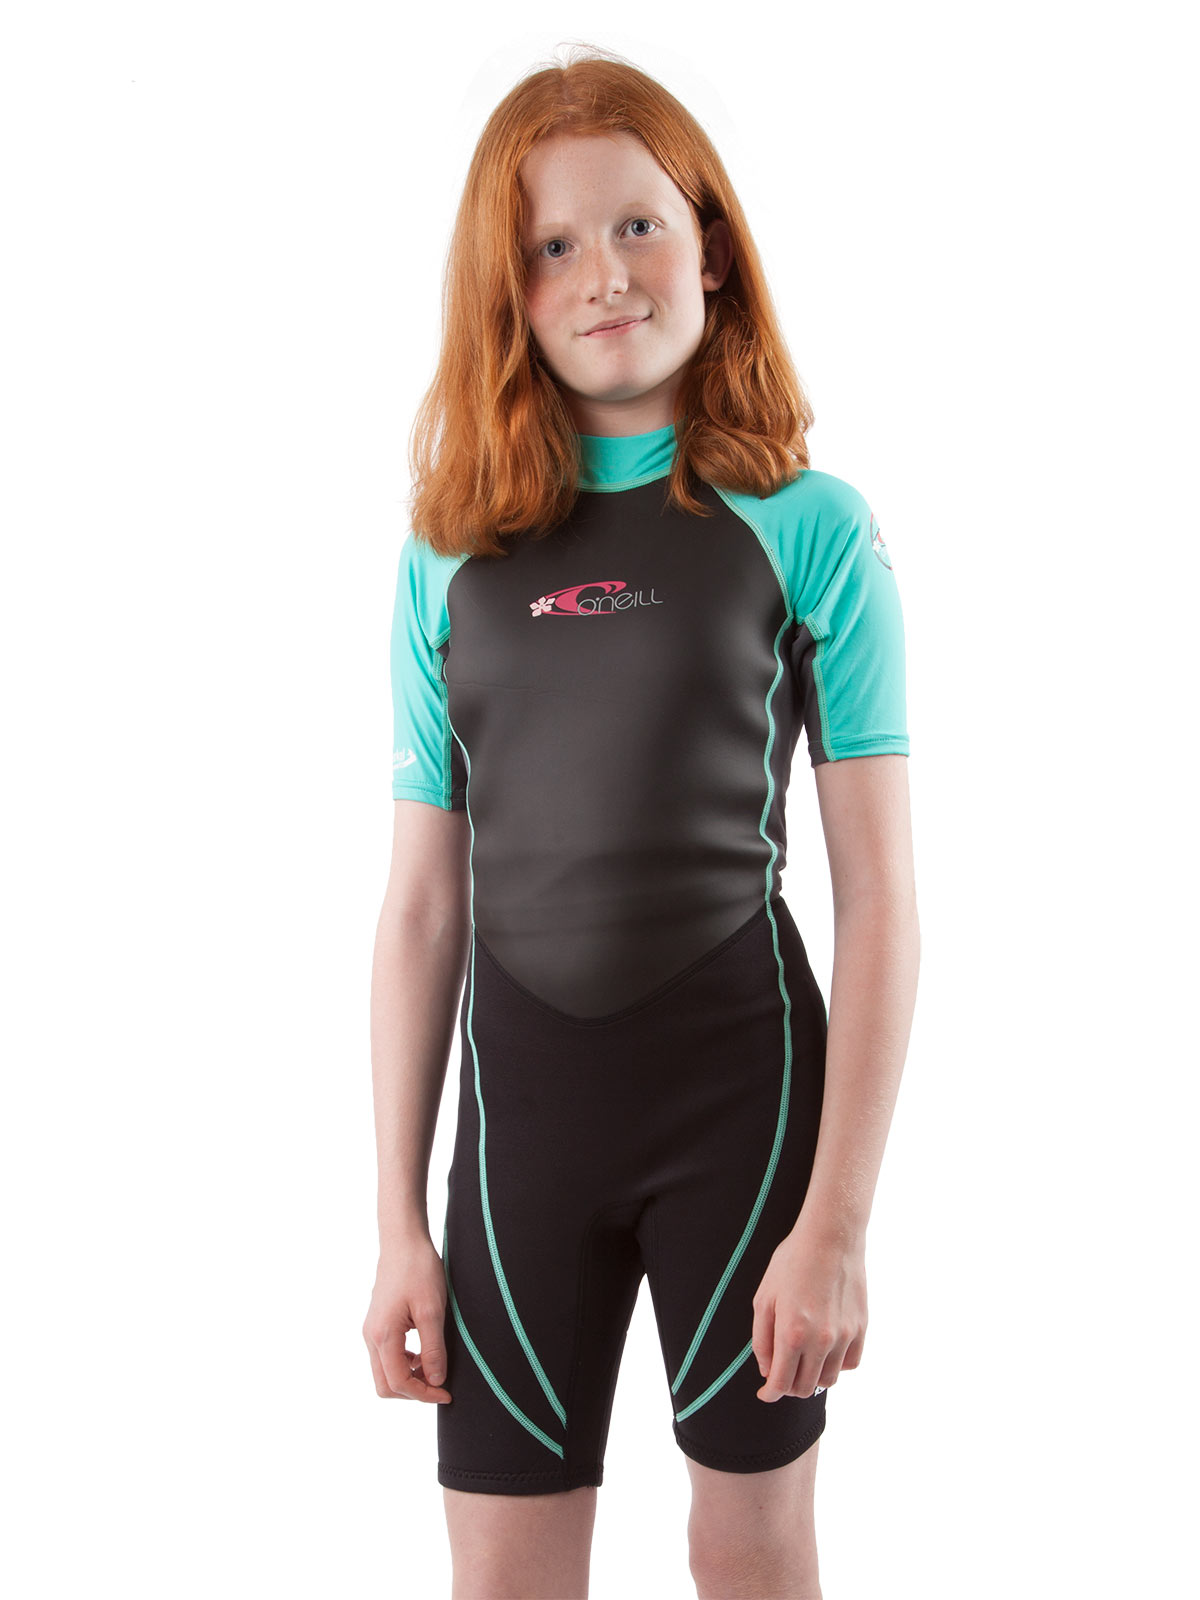 O'Neill Reactor Hybrid Neoprene/Lycra Shorty Kids Wetsuit...